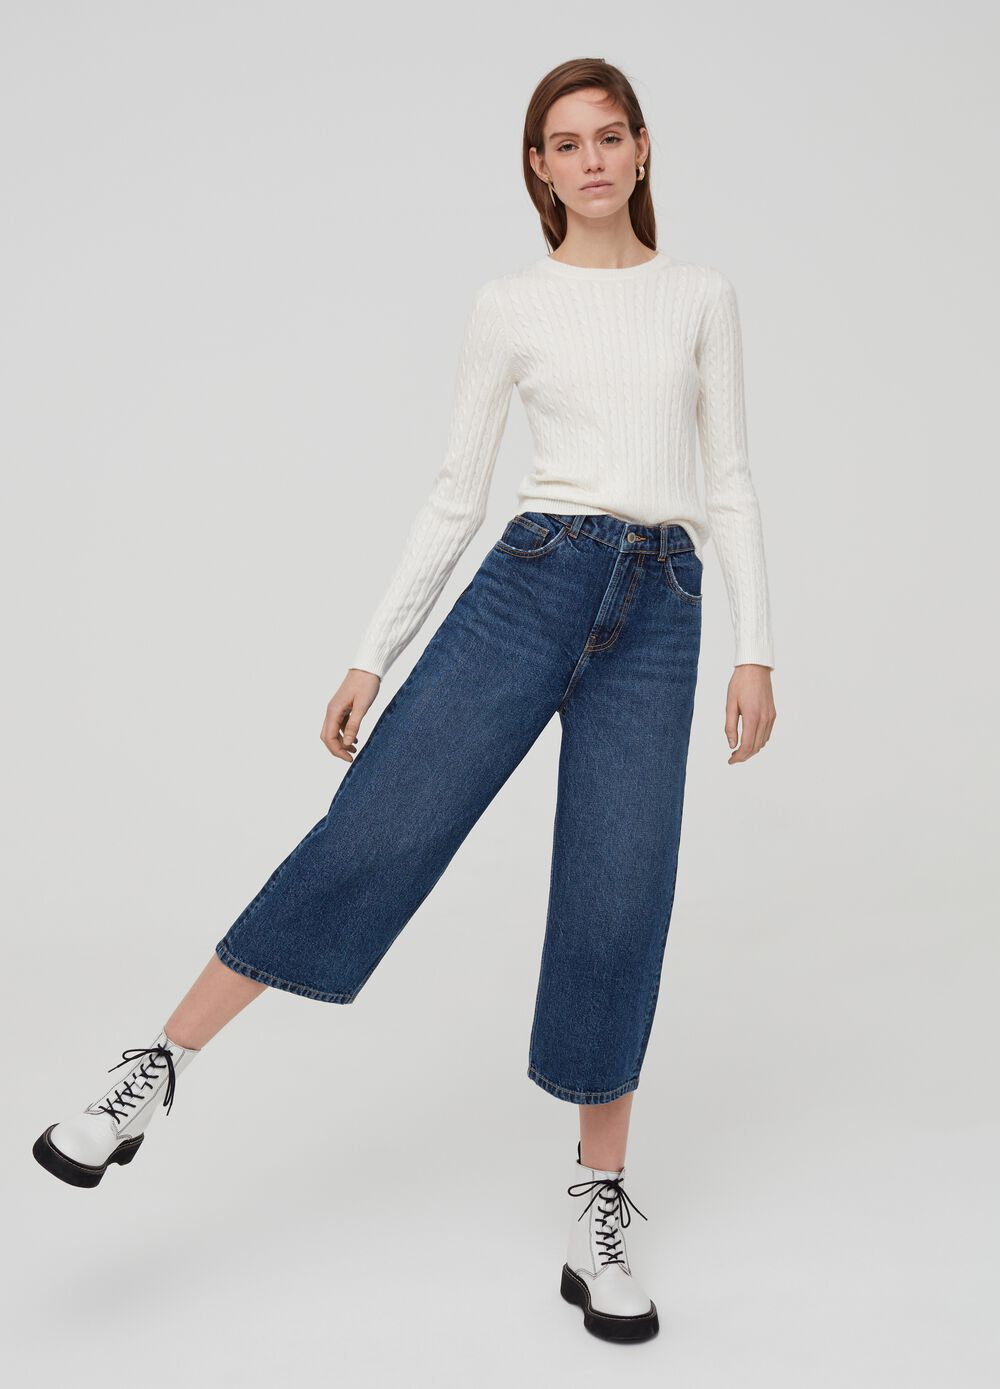 Culotte jeans with five pockets